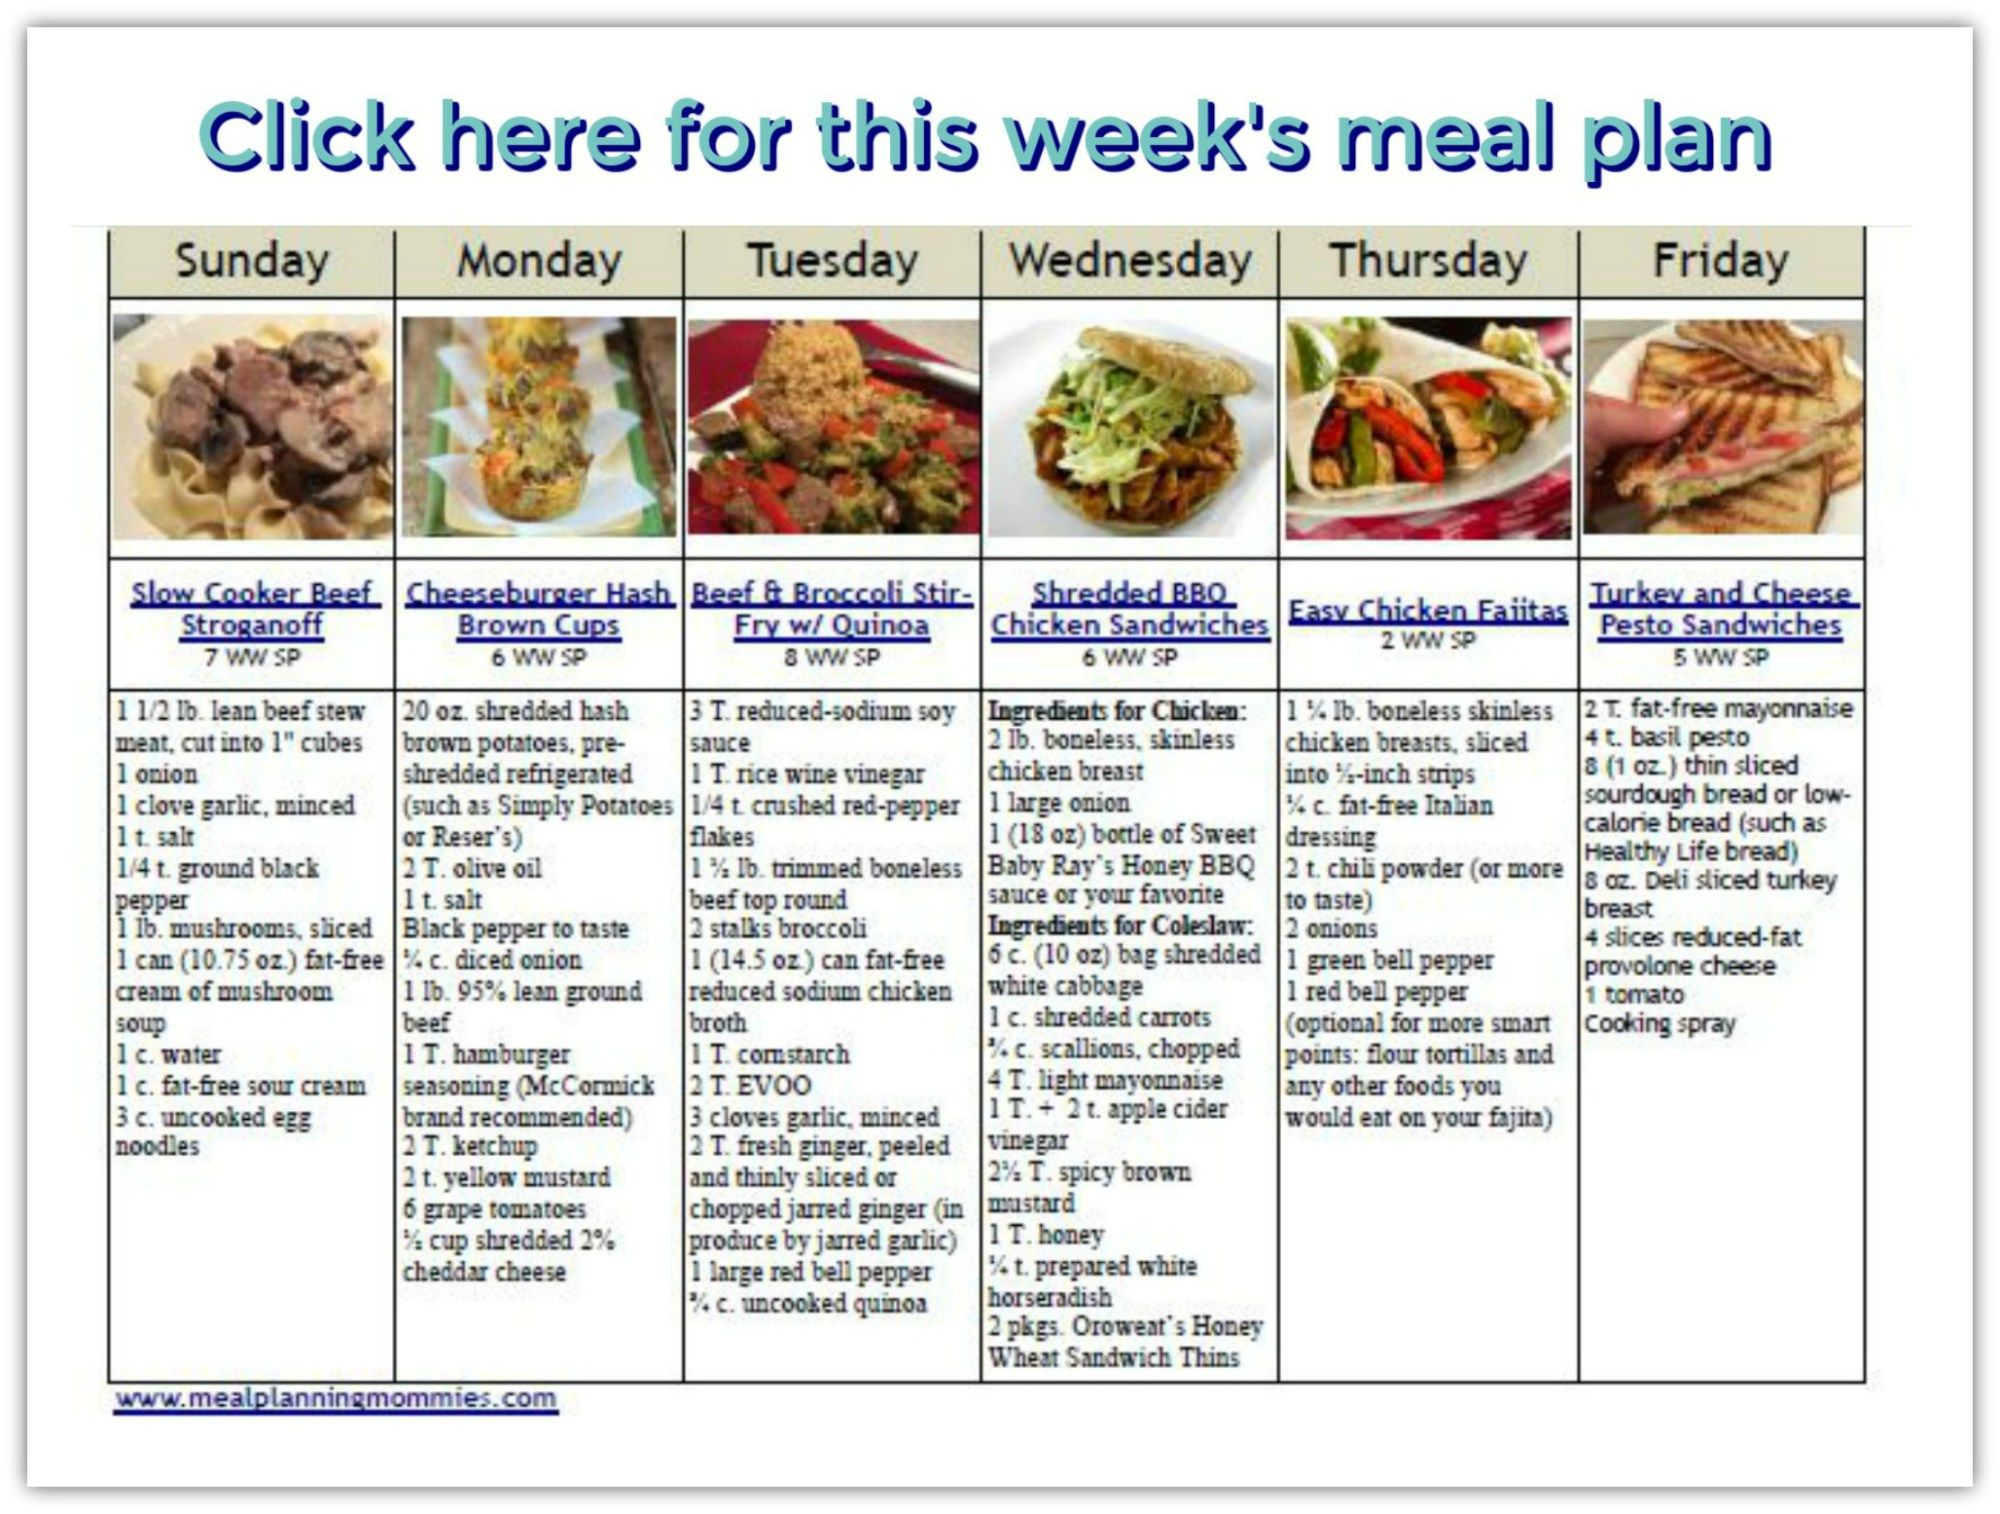 Weight Watcher Friendly Meal Plan 19 With Freestyle Smart